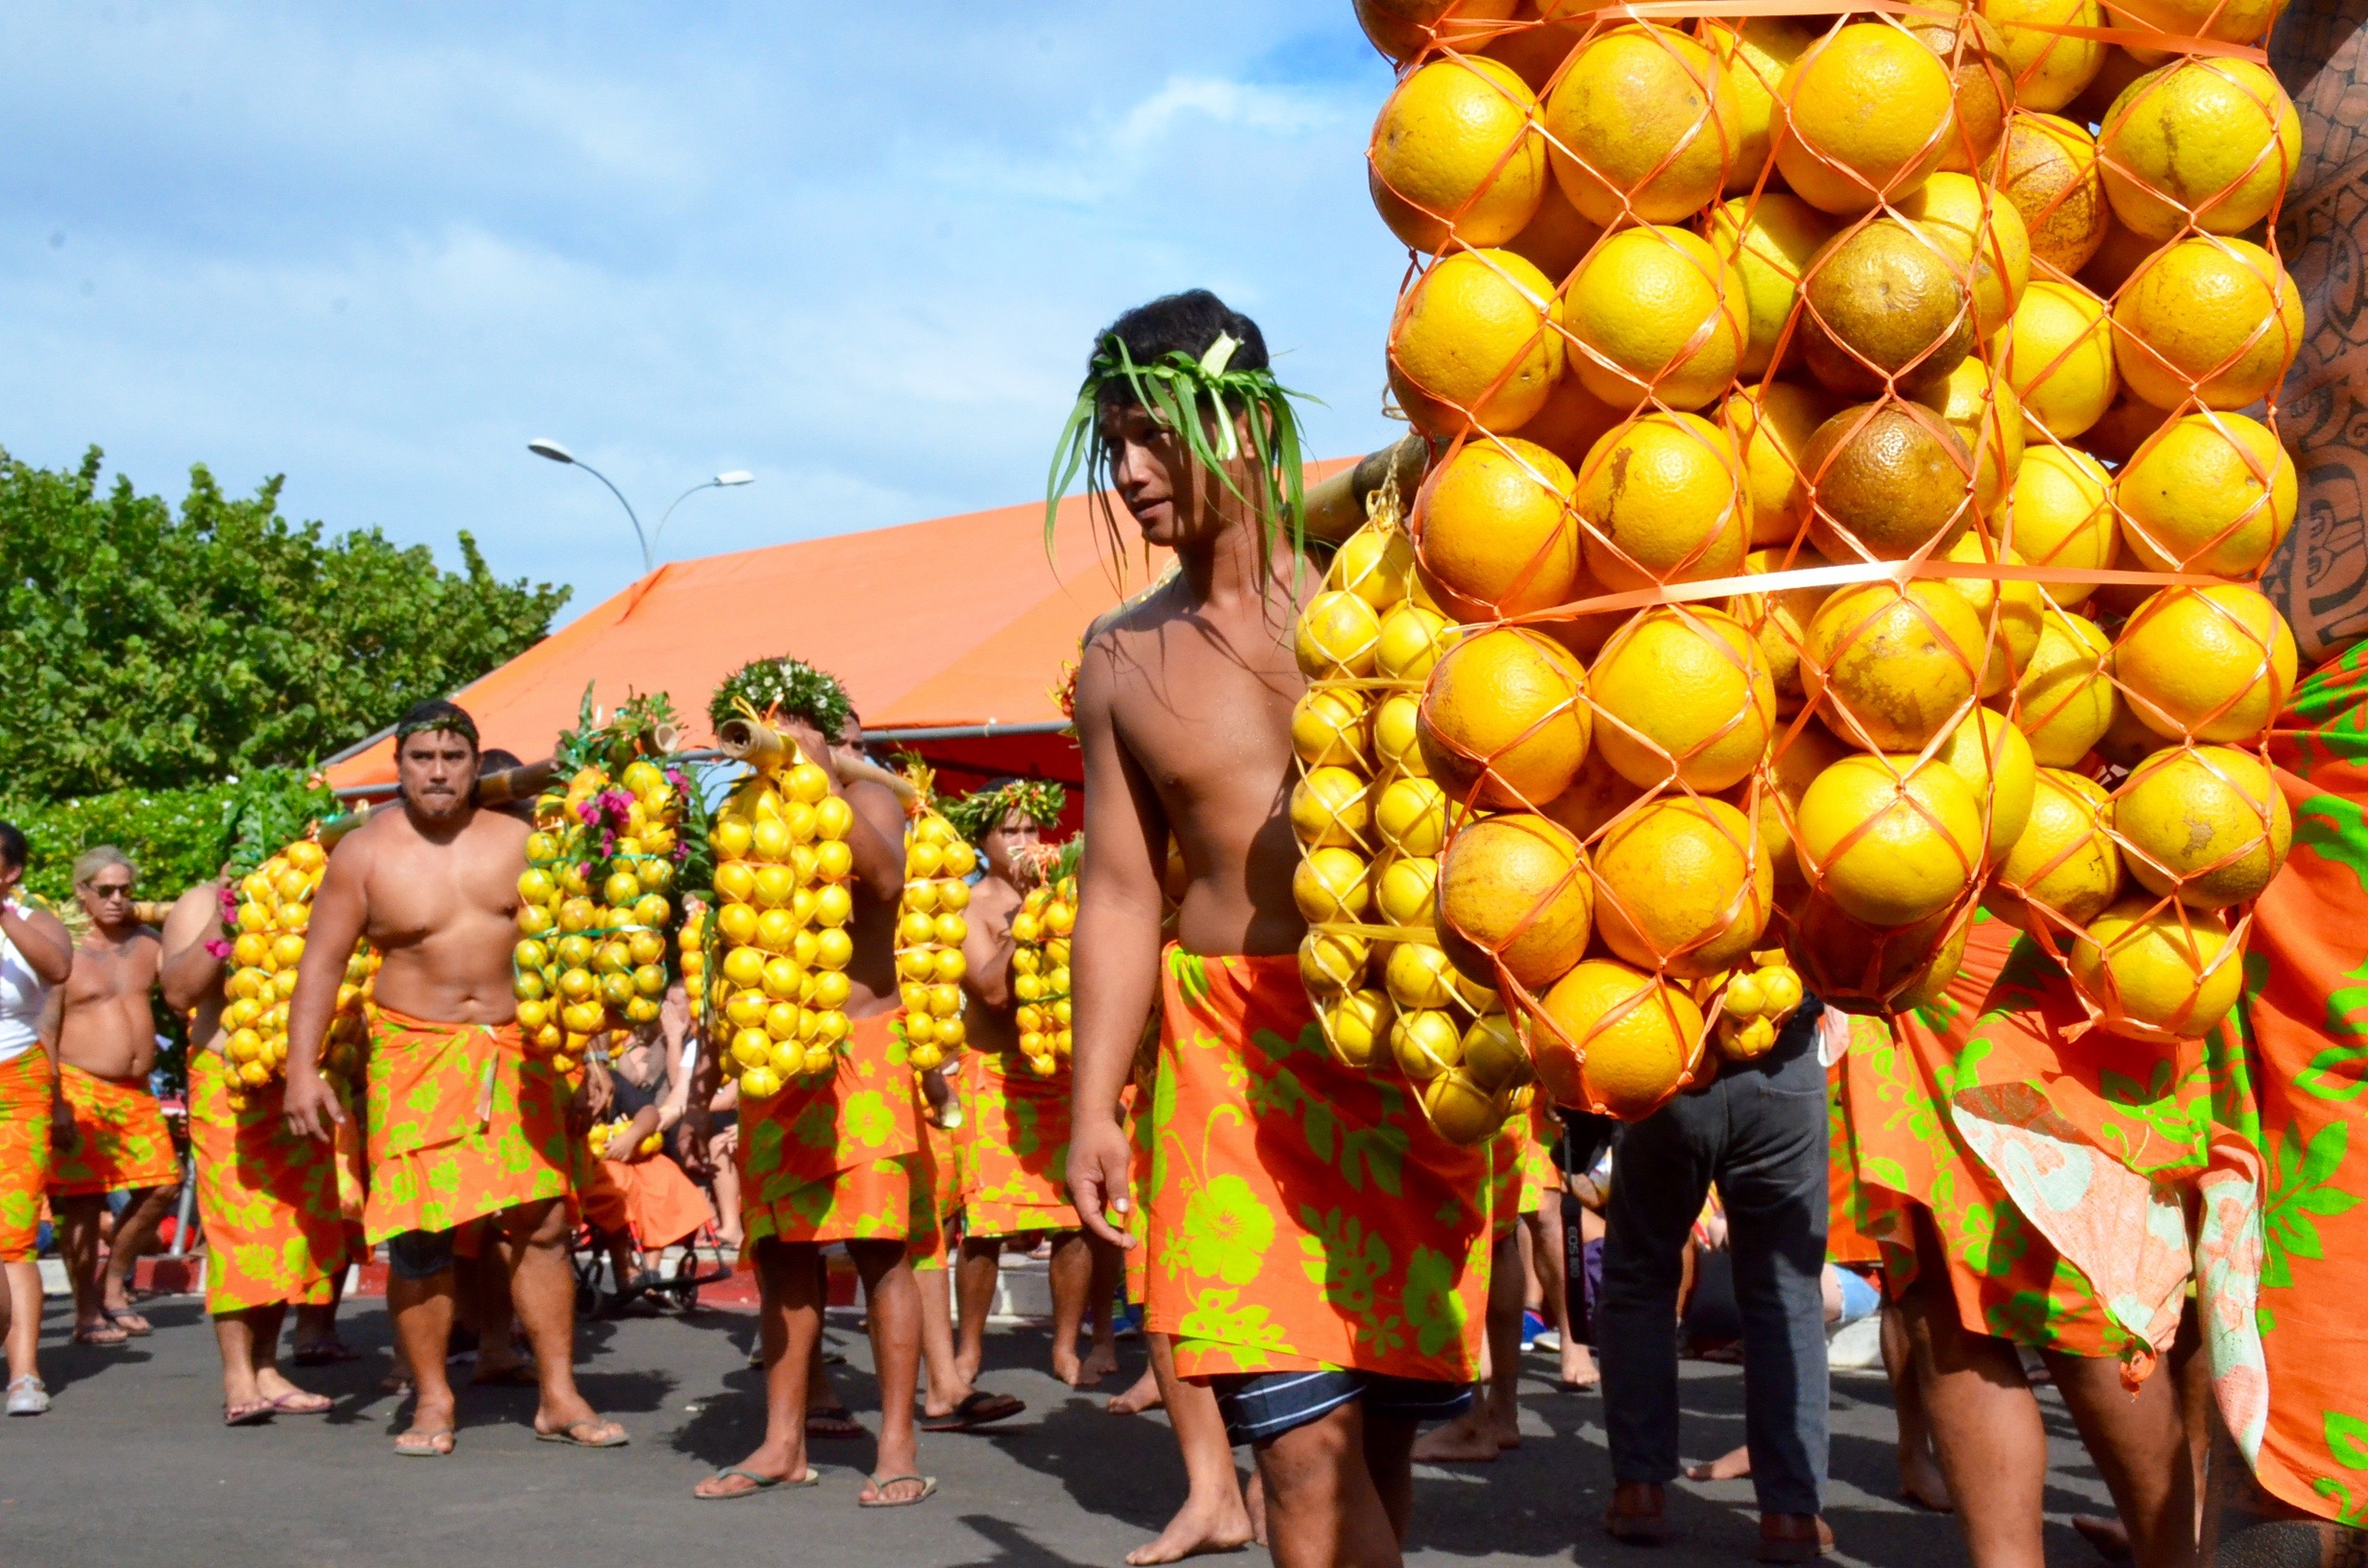 Un week-end pour fêter l'orange à Punaauia